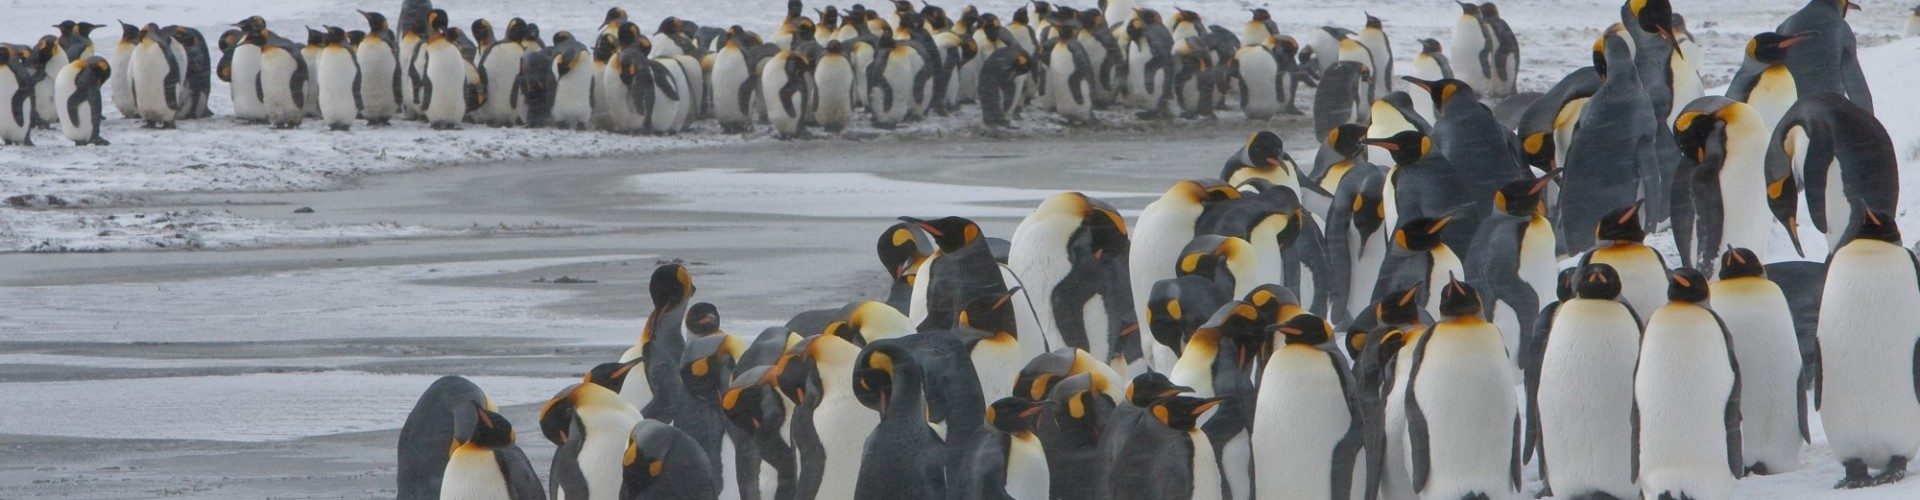 Antarctica - South Georgia - Oceanwide - King Penguin colony in a snowy setting by Jan Veen